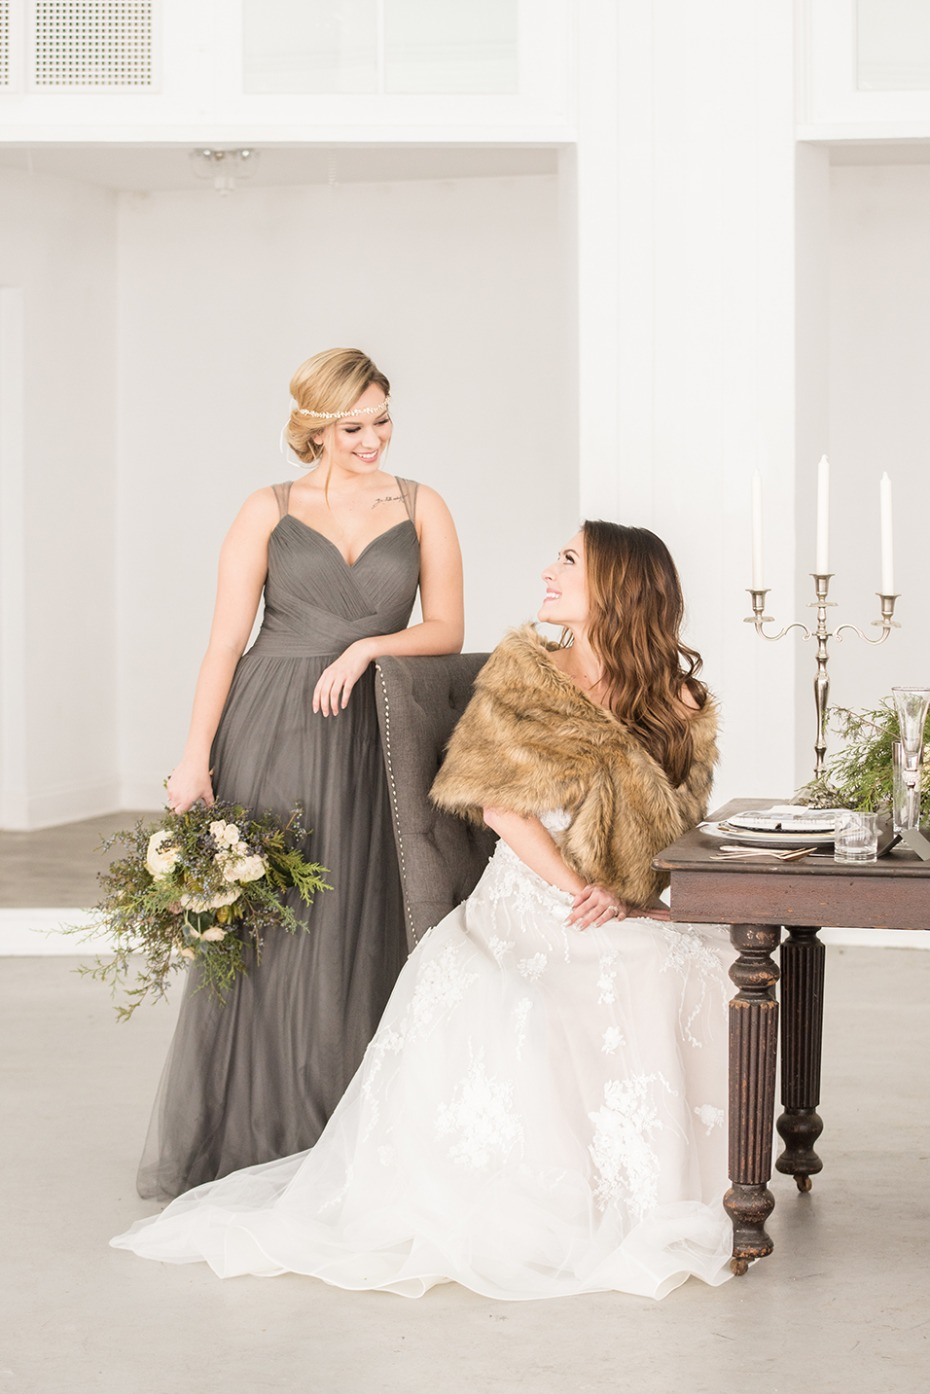 fur shall for the bride and elegant grey dress for the bridesmaid